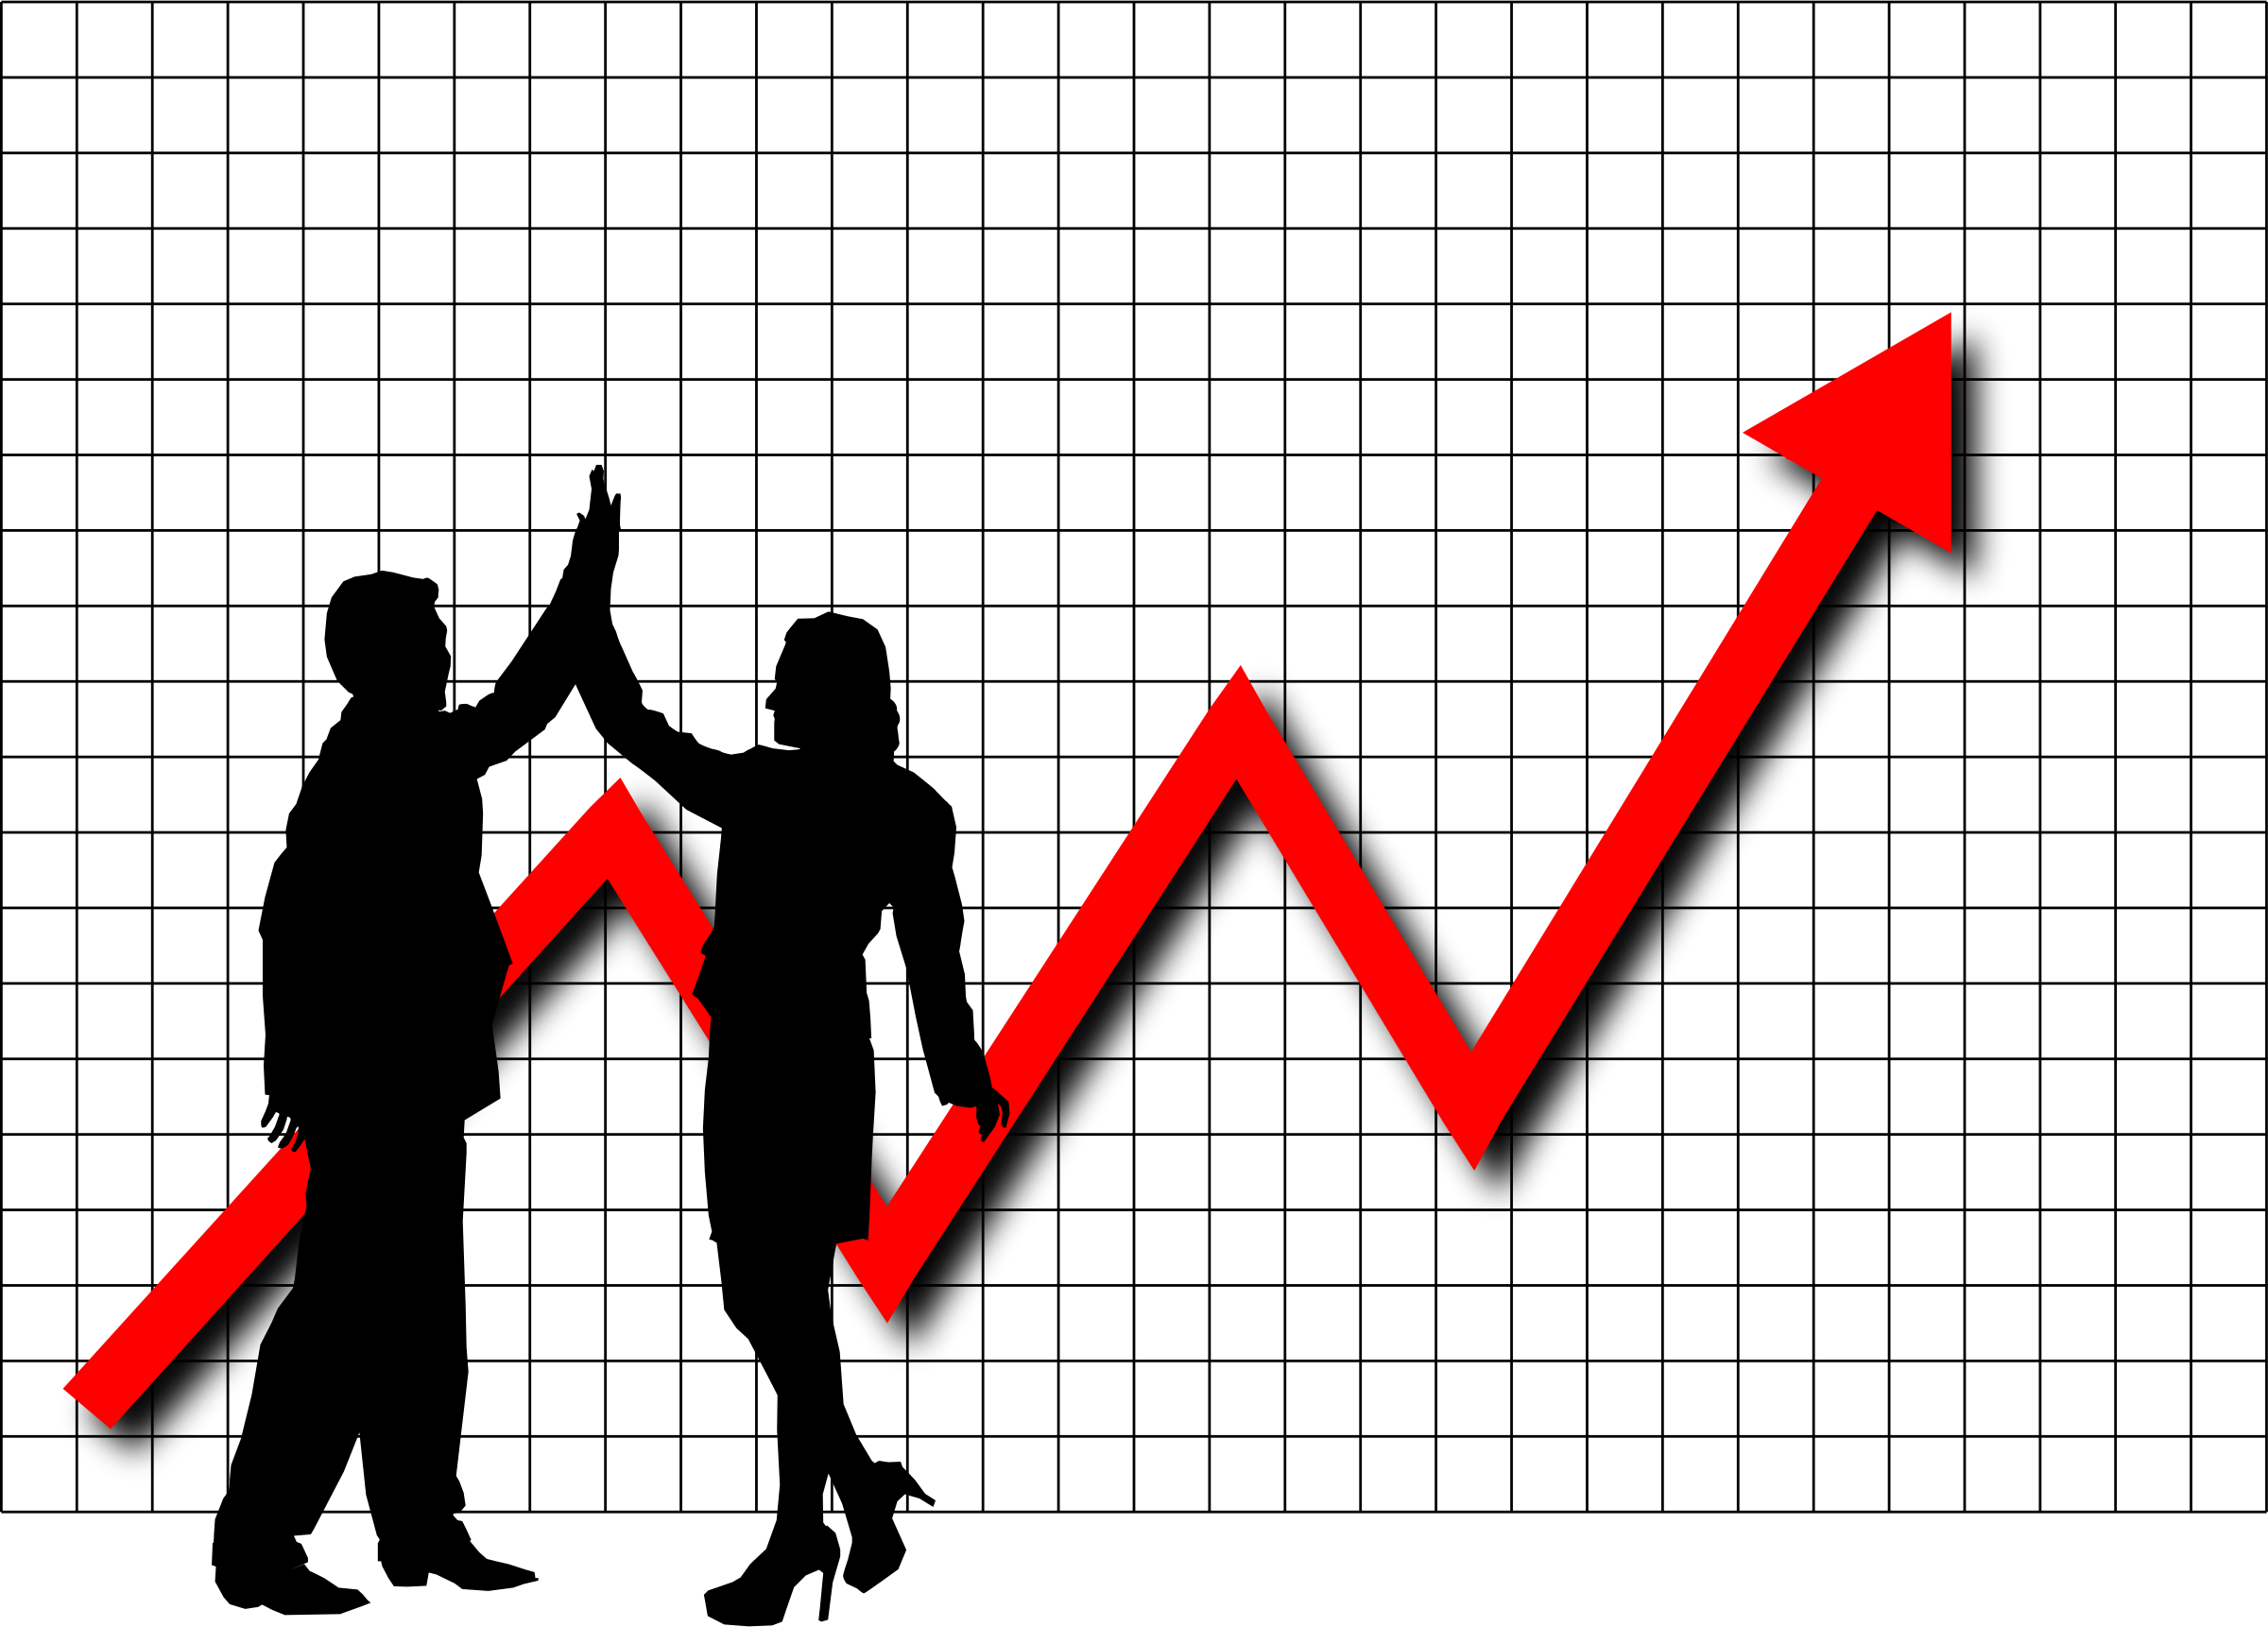 clipart - profit high five graph